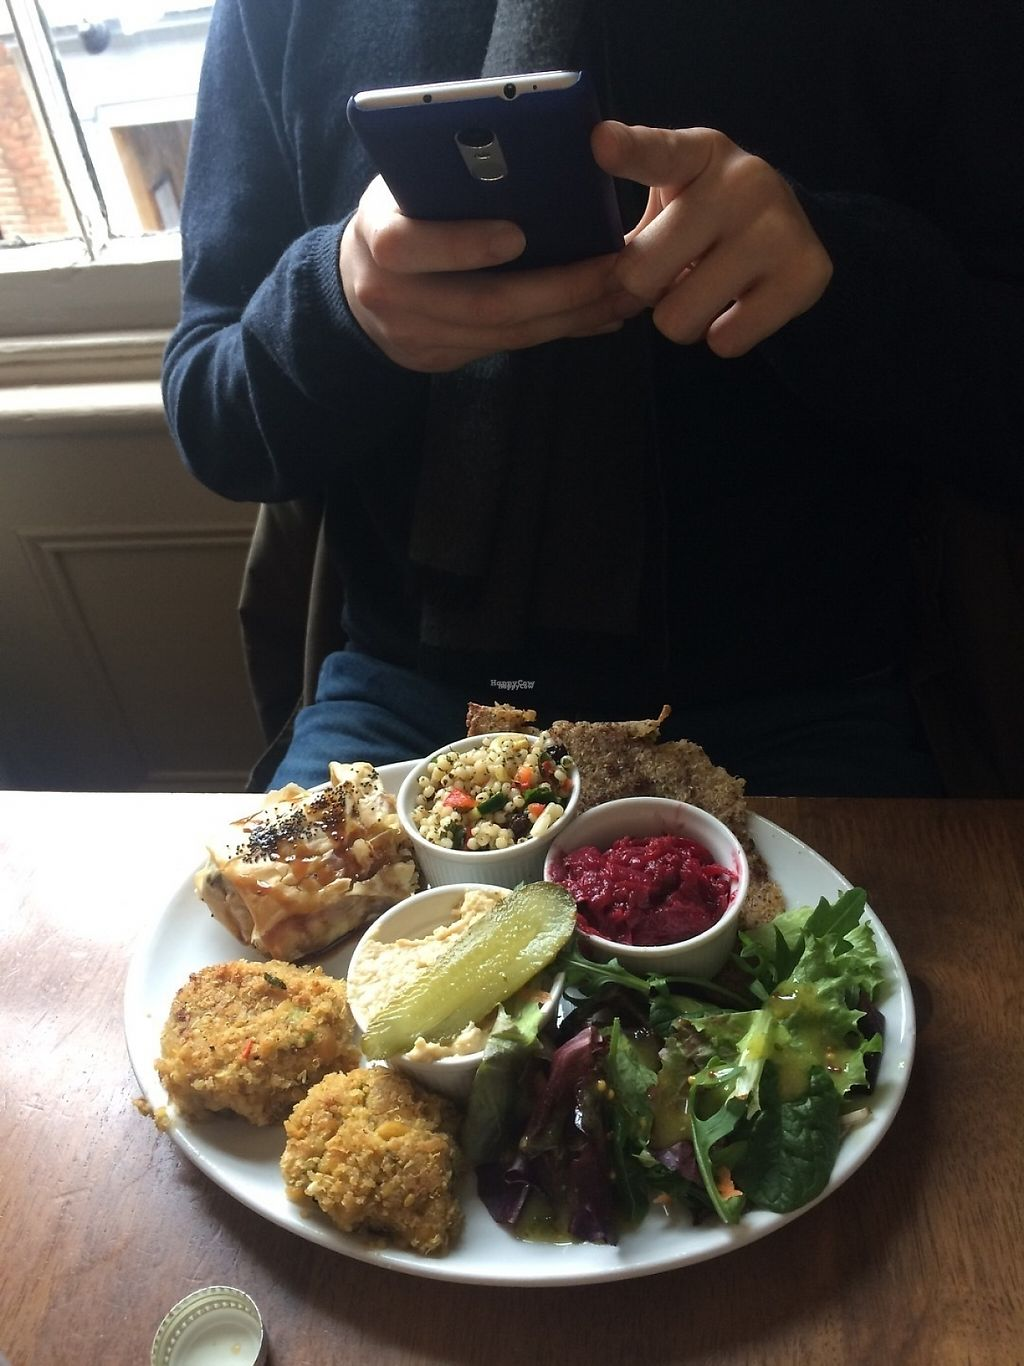 """Photo of Goji Vegetarian Cafe and Deli  by <a href=""""/members/profile/DalmaF"""">DalmaF</a> <br/>Hummus, falafel, tabbouleh, beetroot etc. lots of yummy things <br/> March 22, 2017  - <a href='/contact/abuse/image/17816/239505'>Report</a>"""